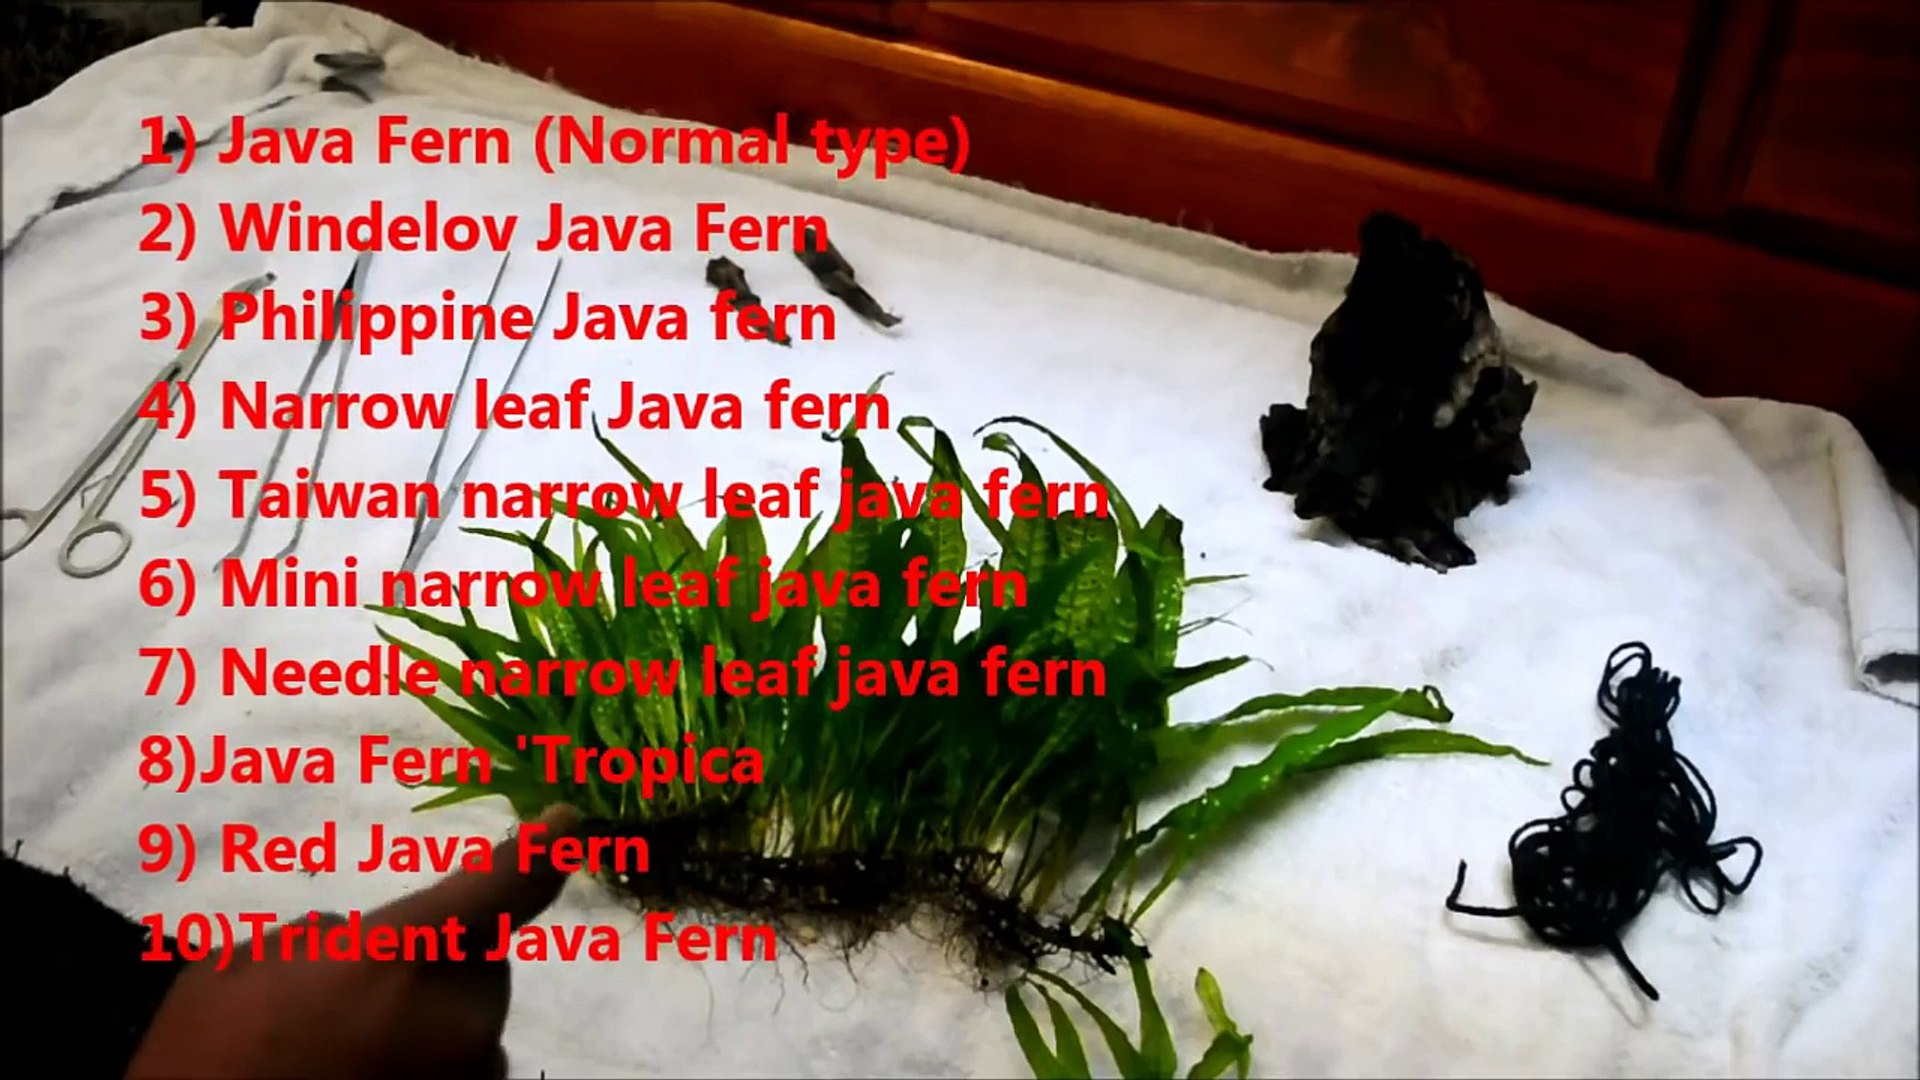 Java Fern Plant Guide and How to Grow and Care for Java Fern